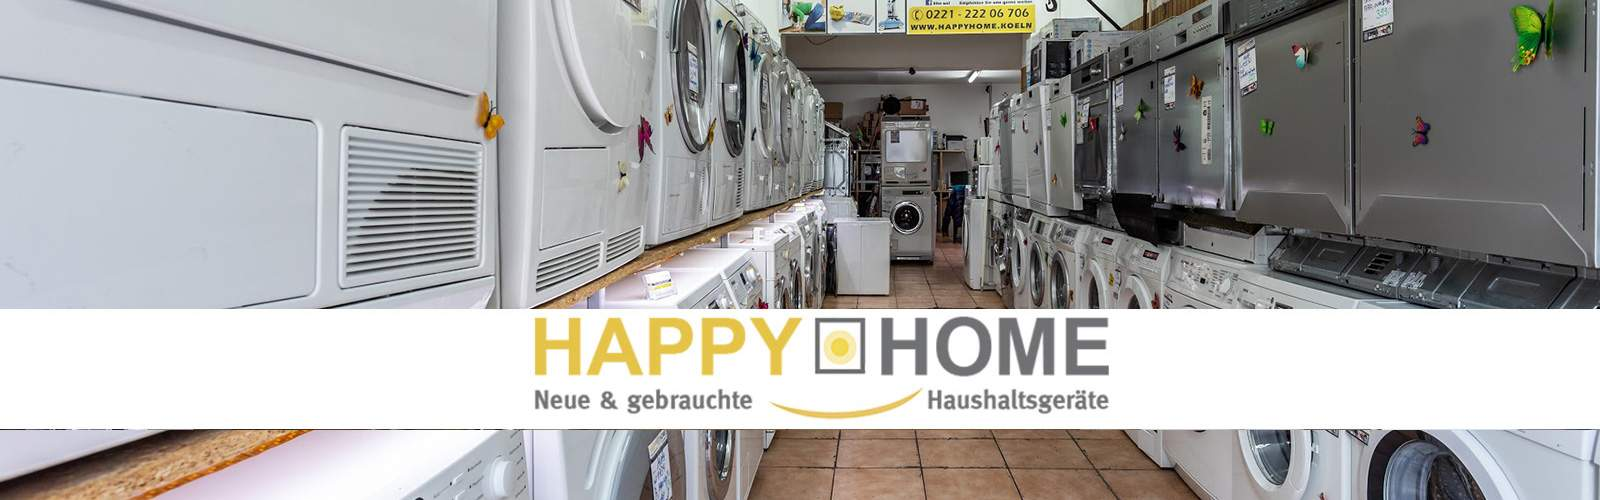 happy_home_koeln_kontakt_neu